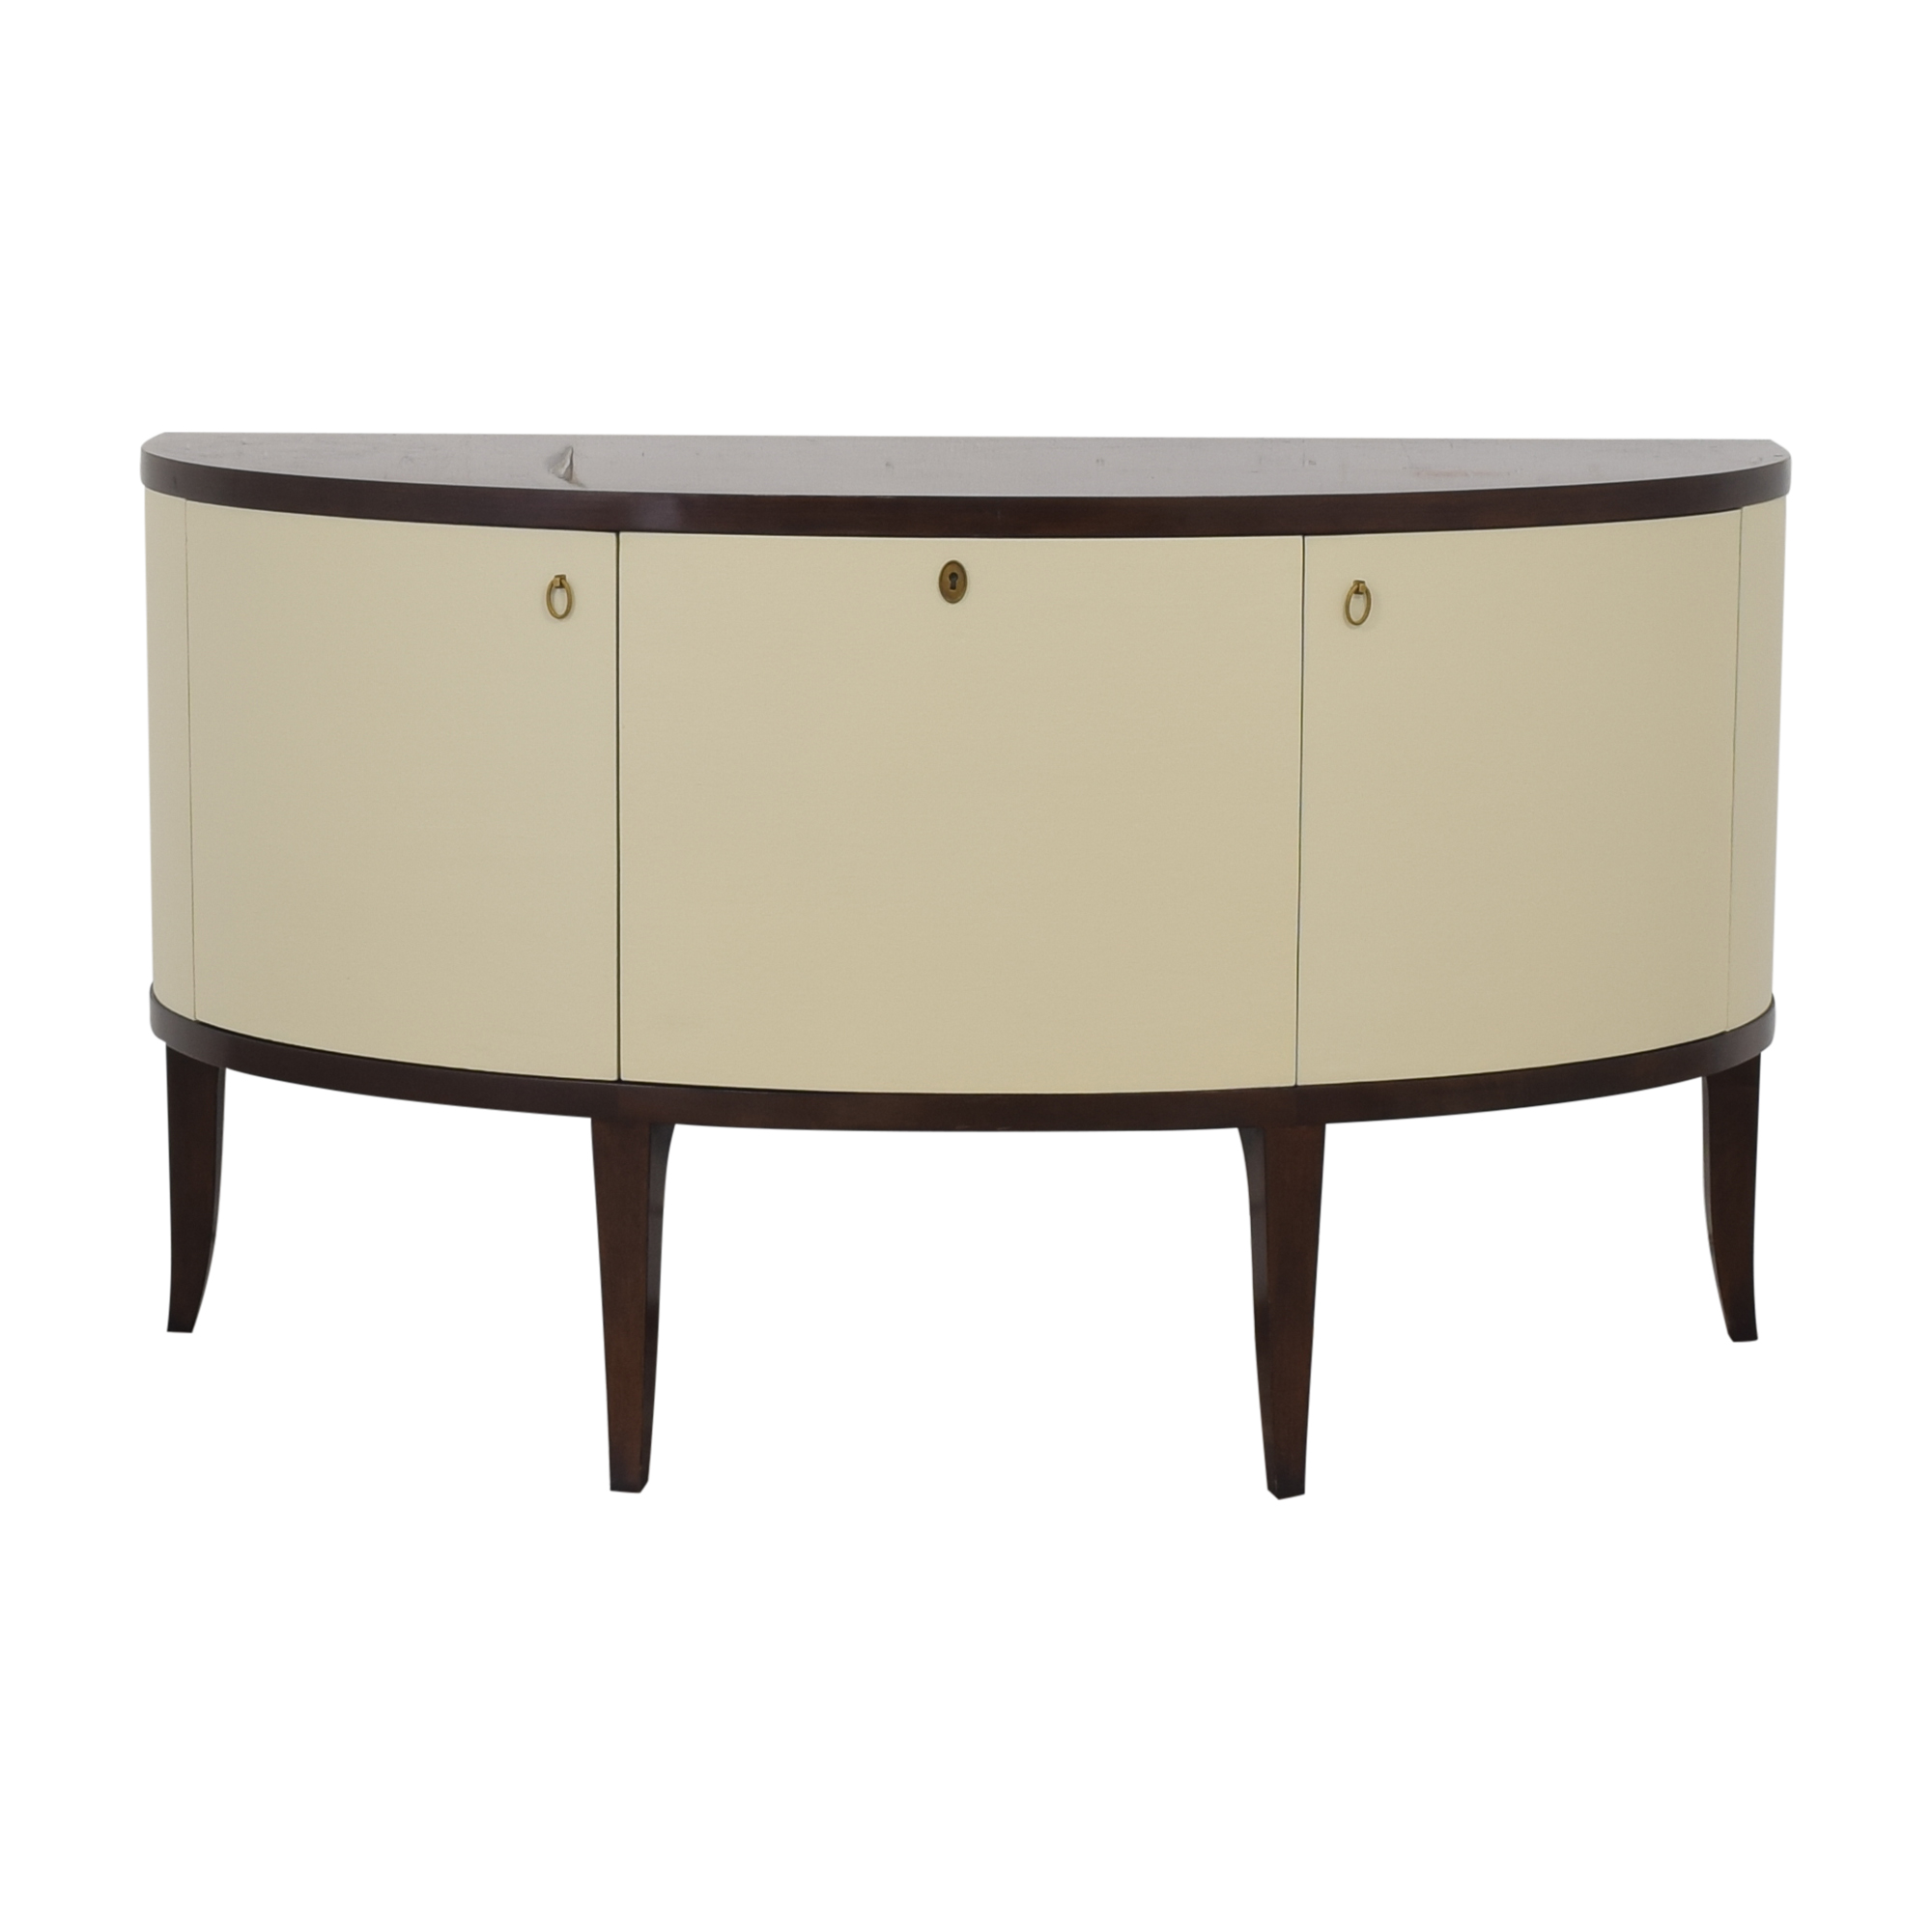 Henredon Furniture Barbara Barry for Henredon Demilune Console Table dimensions